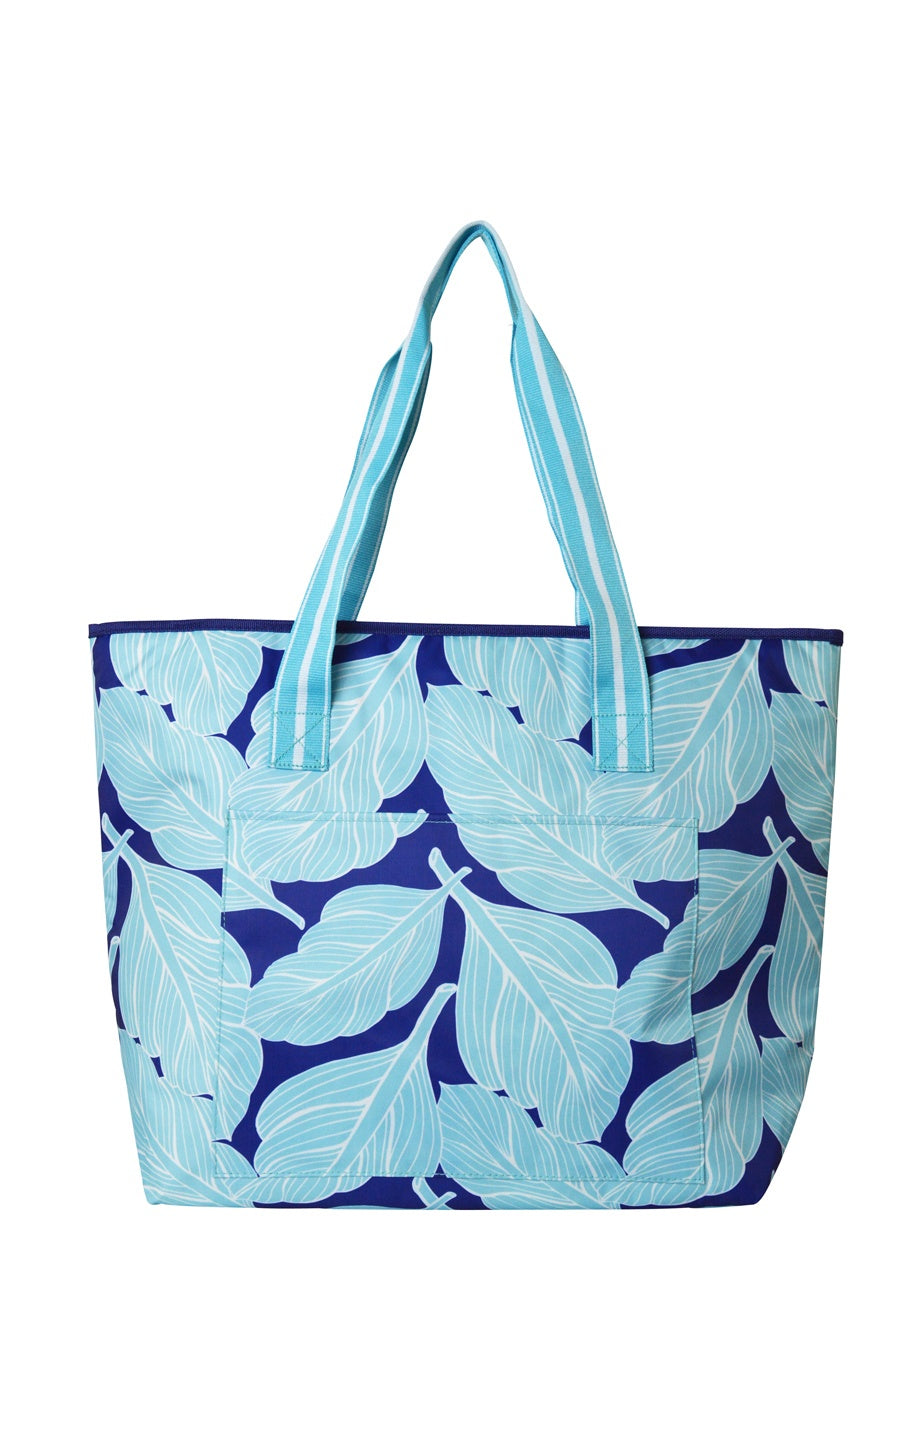 All For Color-Palm Paradise Cooler Tote - FINAL SALE-Cooler Bag